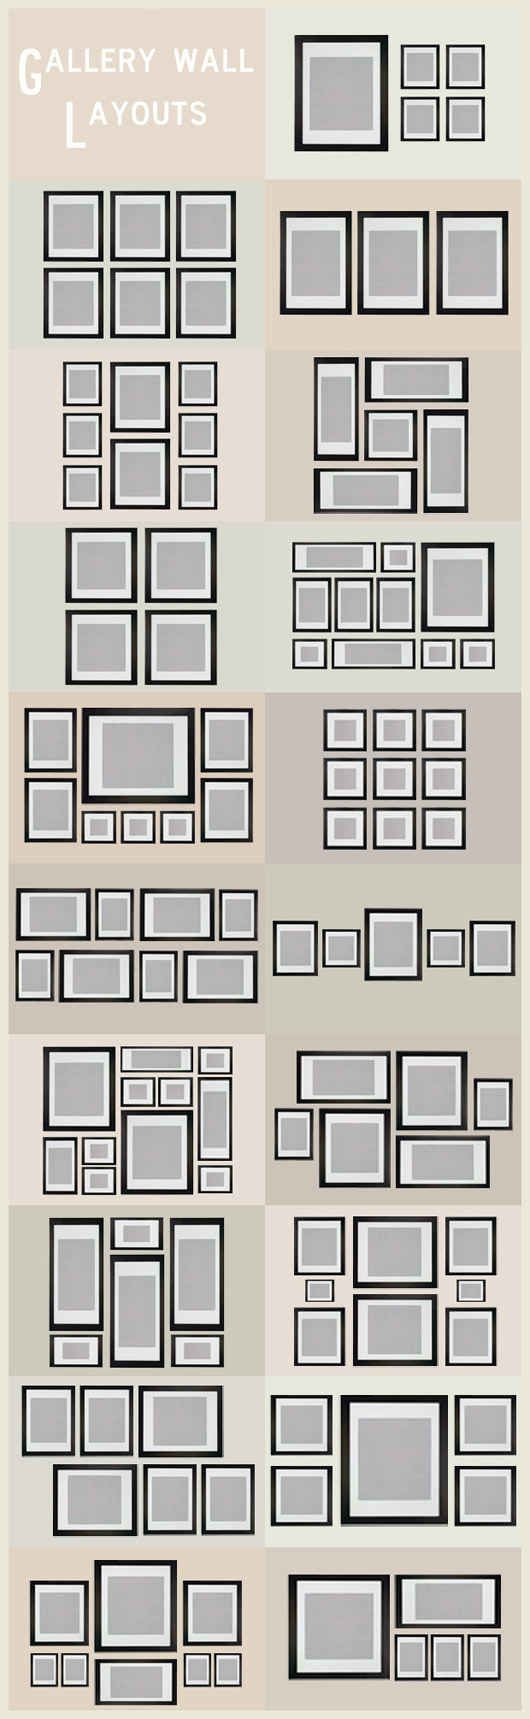 Gallery Wall Layout Ideas - Infographic found on Hello Lovely